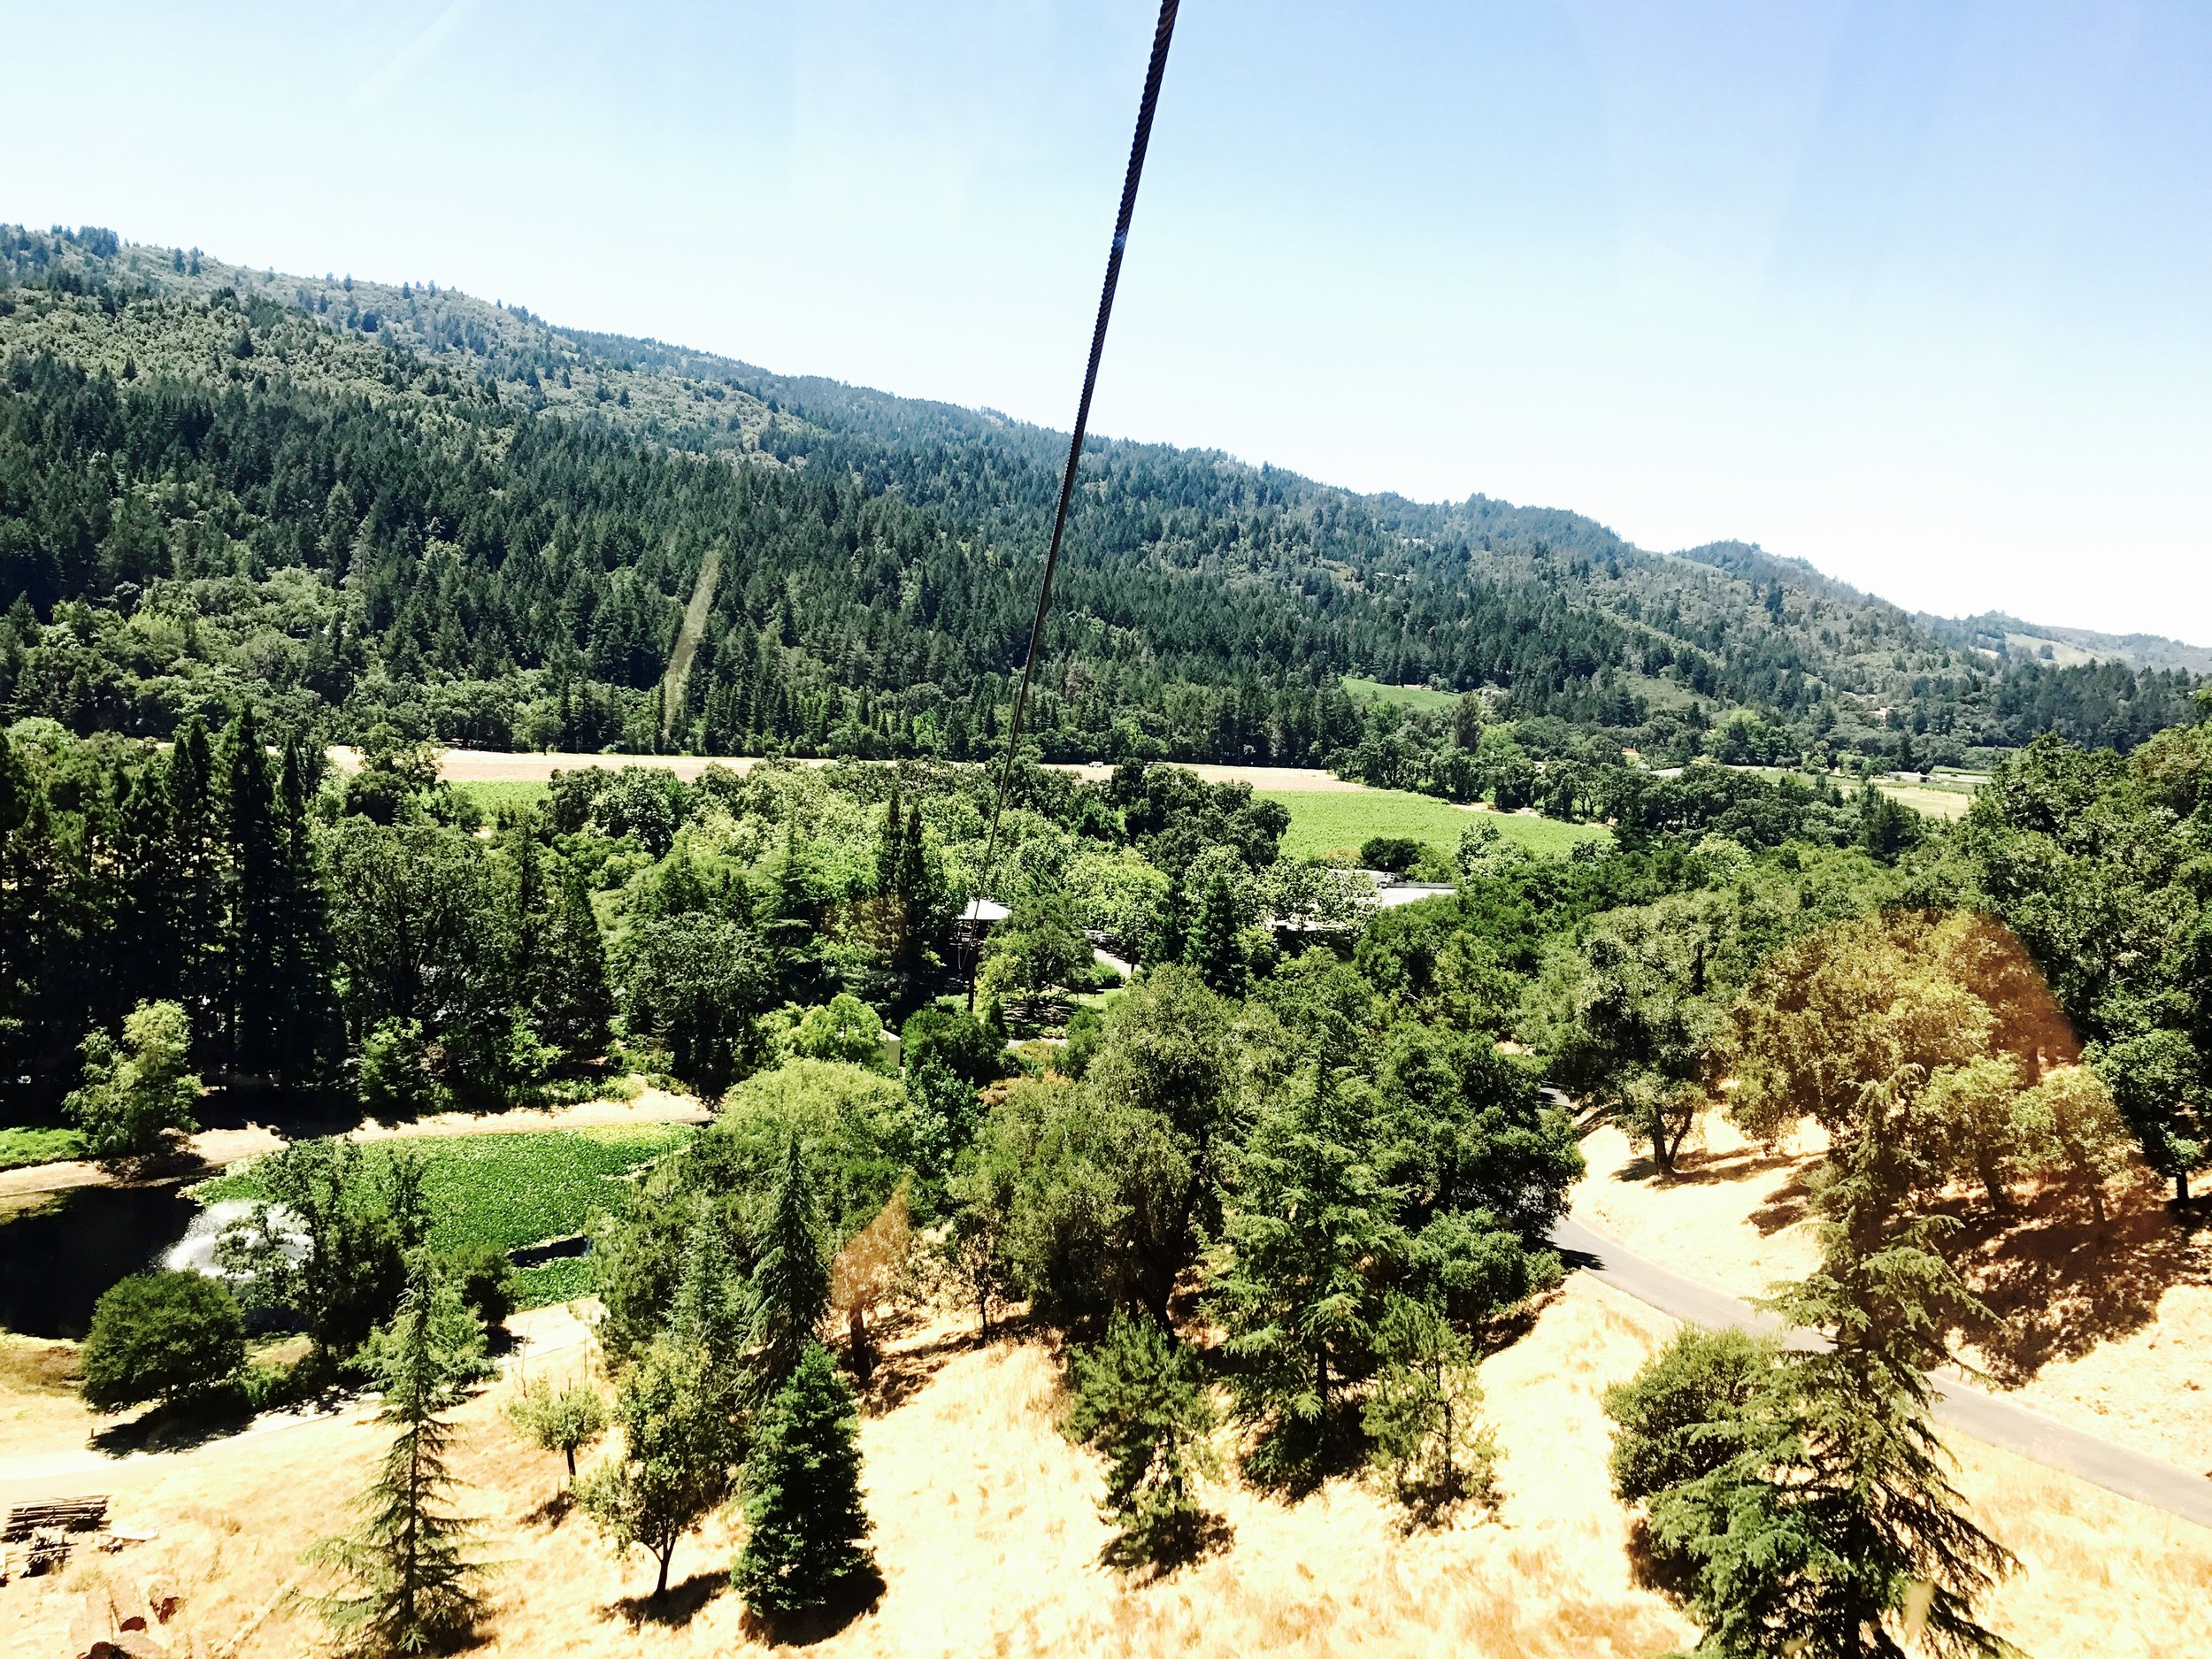 It's a good thing my dad wasn't with us on the gondola, he probably would have freaked out!